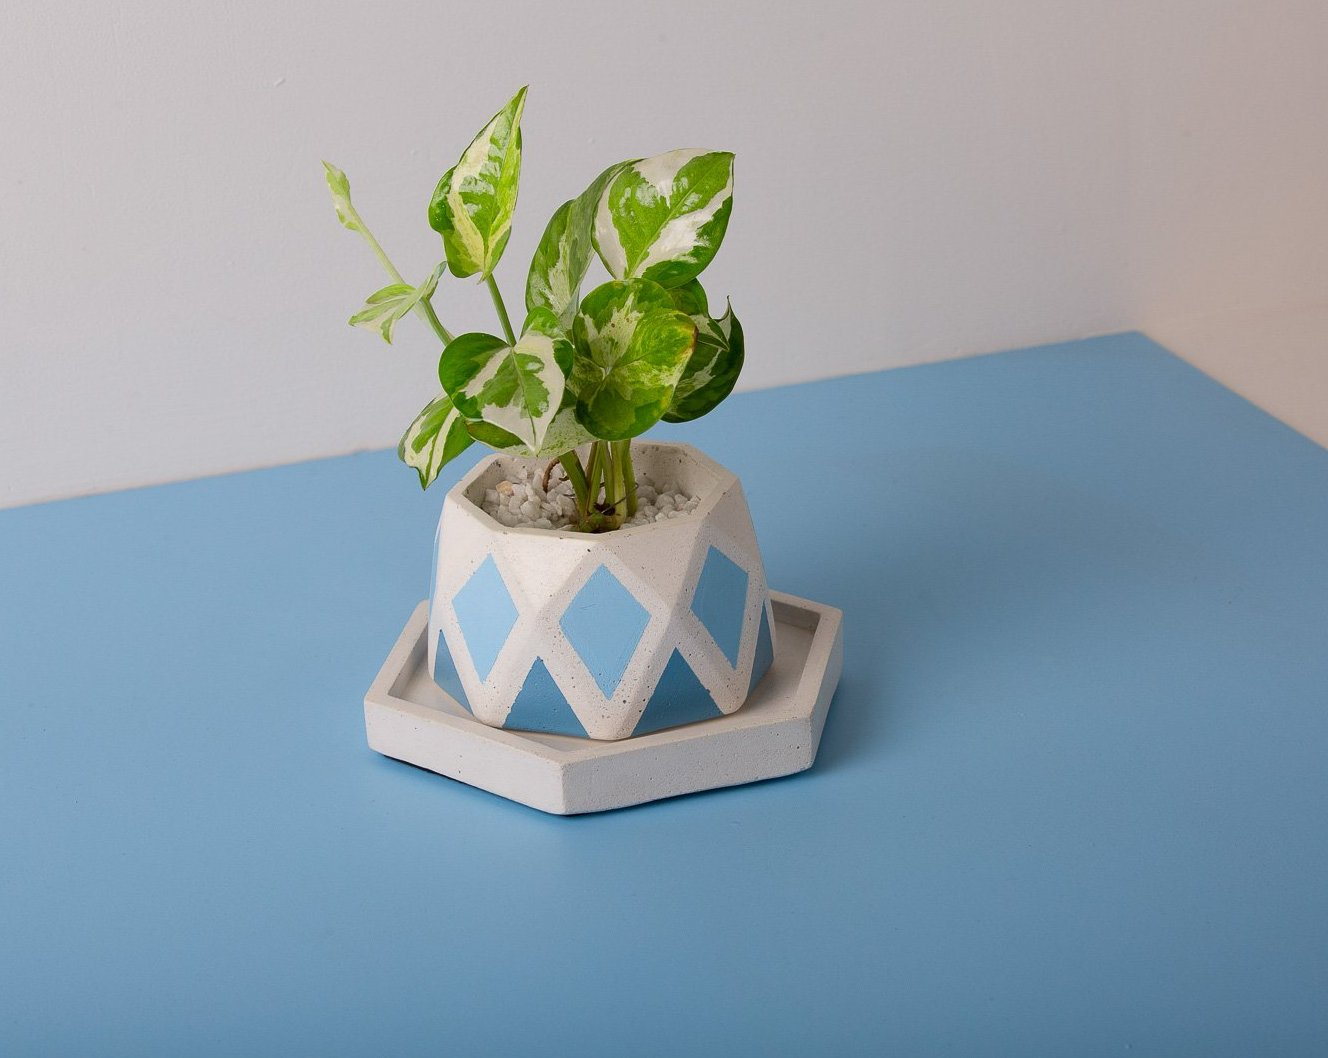 Concrete Diamante Planter - Blue Invertrix Collection - Eliteearth